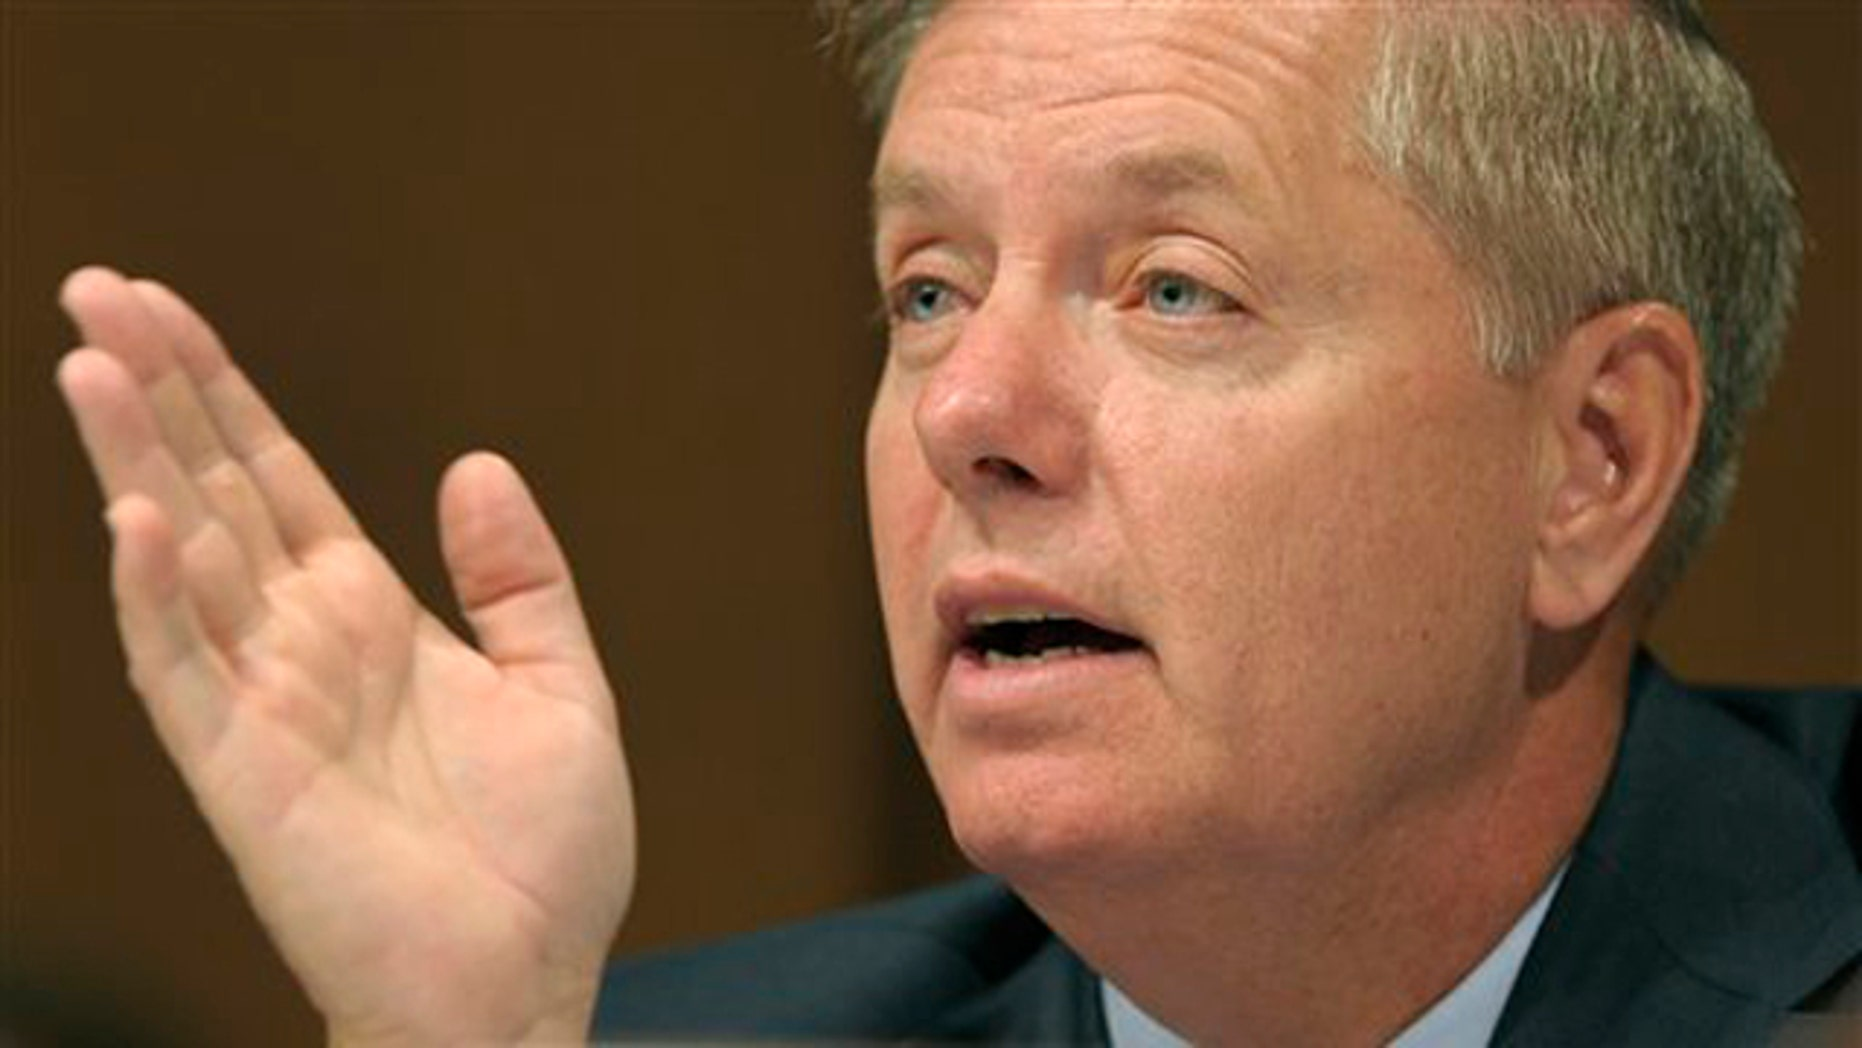 FILE: June 29, 2010: Sen. Lindsey Graham is shown here questioning Supreme Court nominee Elena Kagan on Capitol Hill, in Washington, D.C.